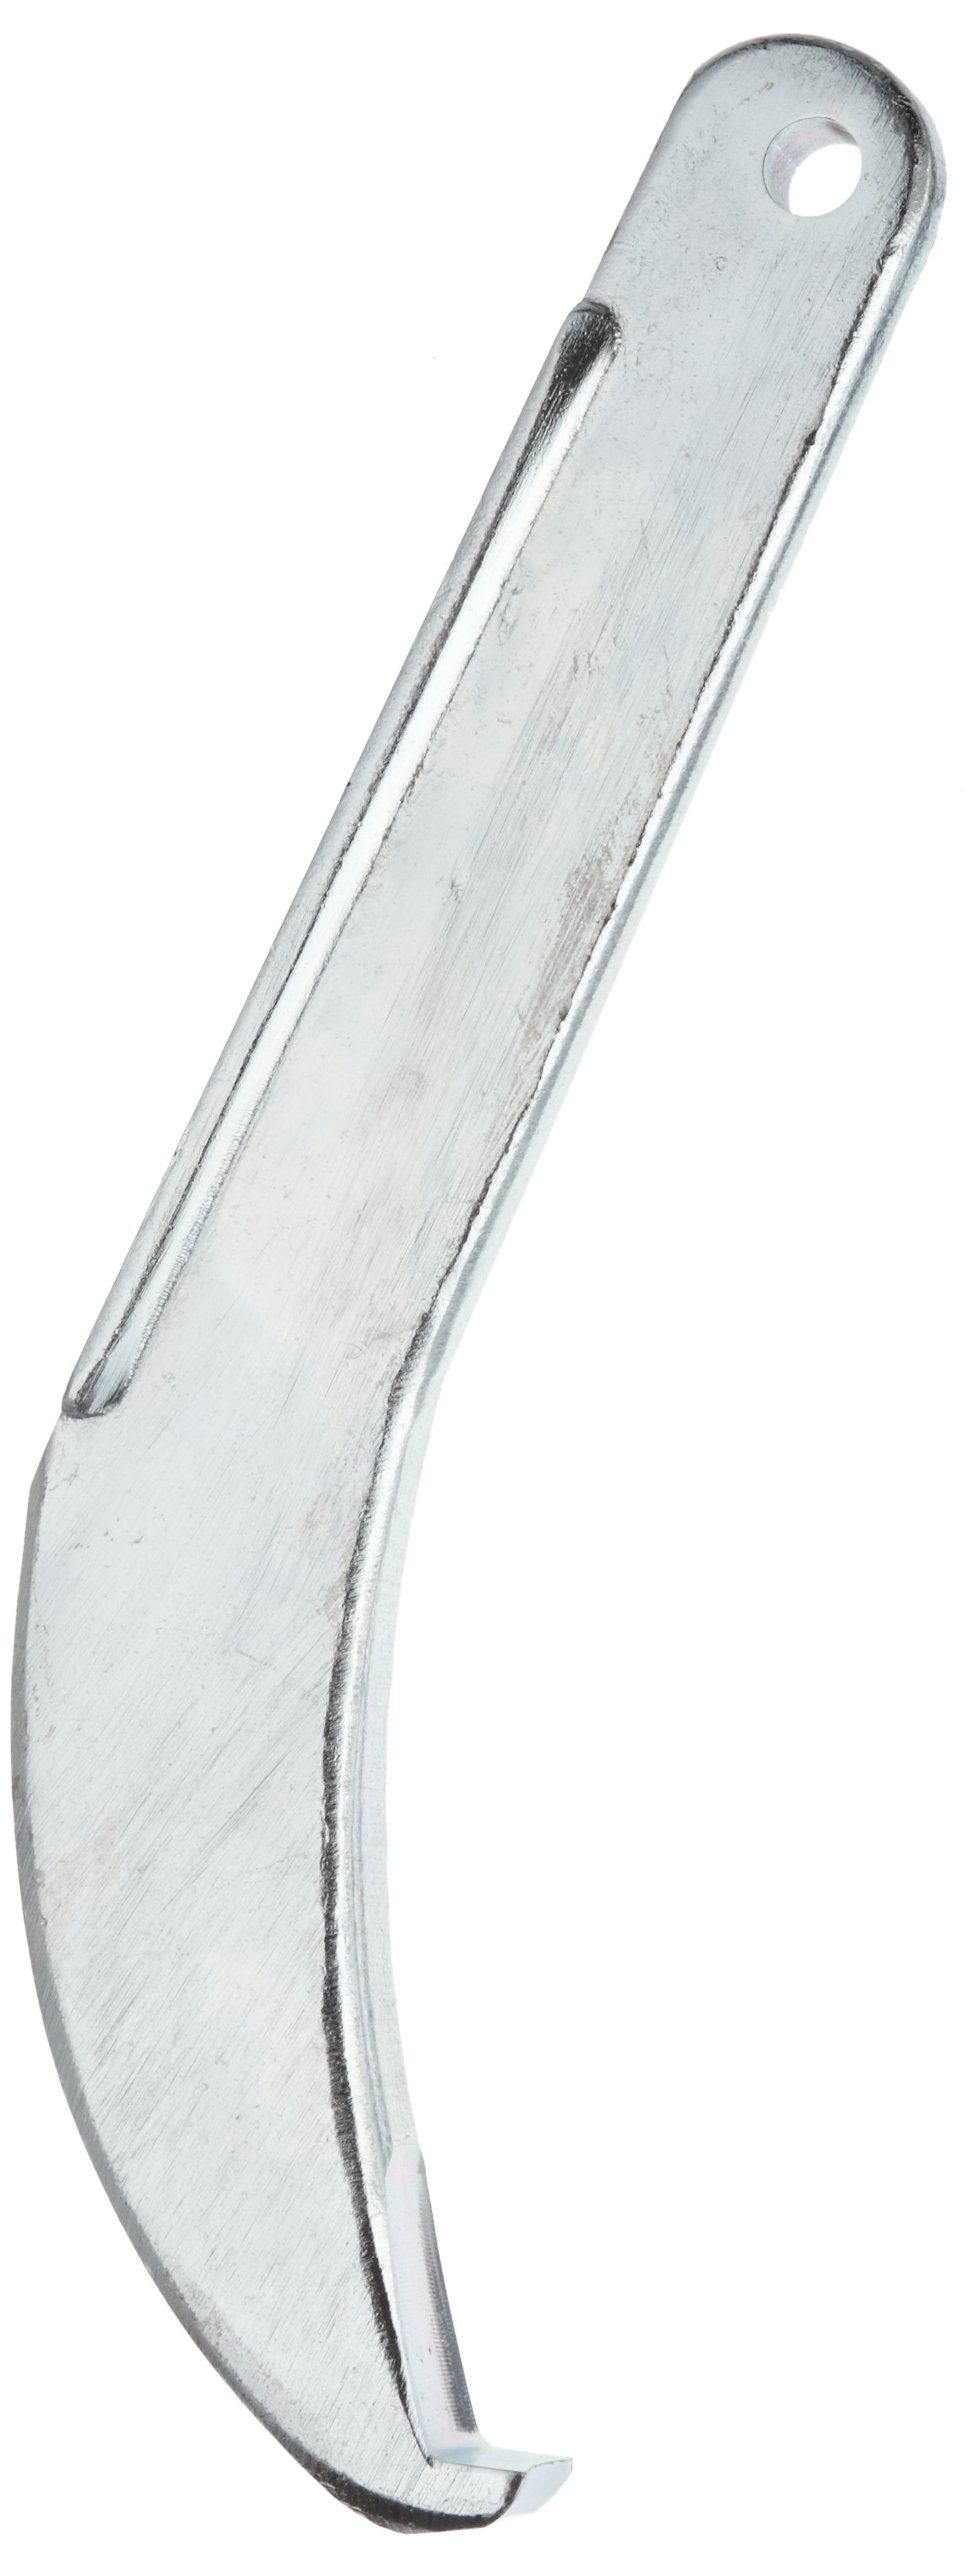 Posi Lock 11054 Puller Jaw, For Use With 110 and 210 Puller